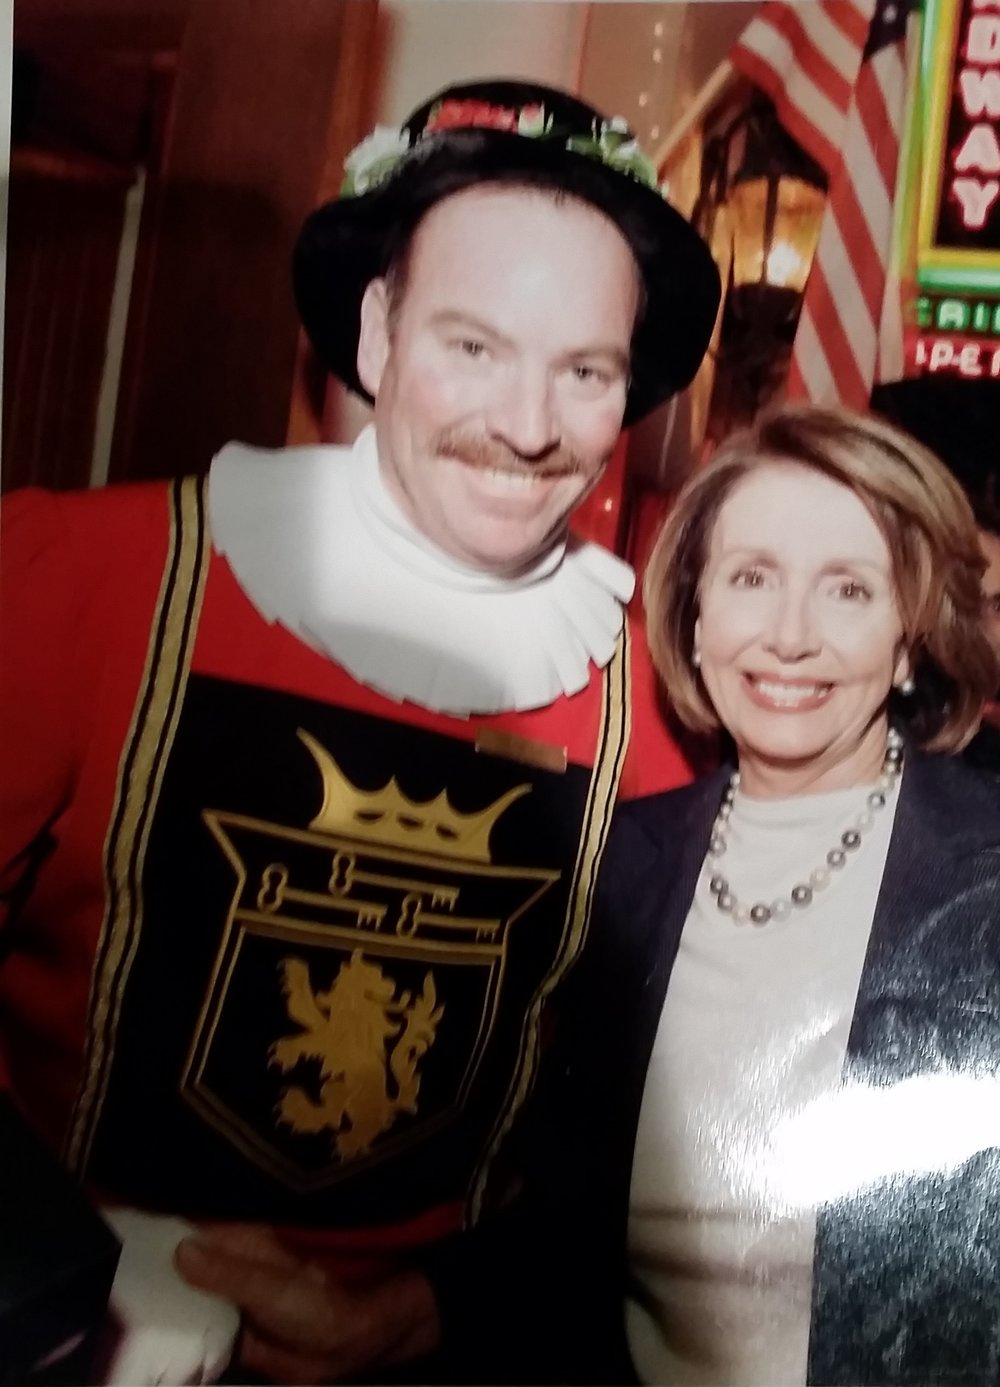 With Nancy Pelosi, trying to look OK with someone putting a drink down without a coaster